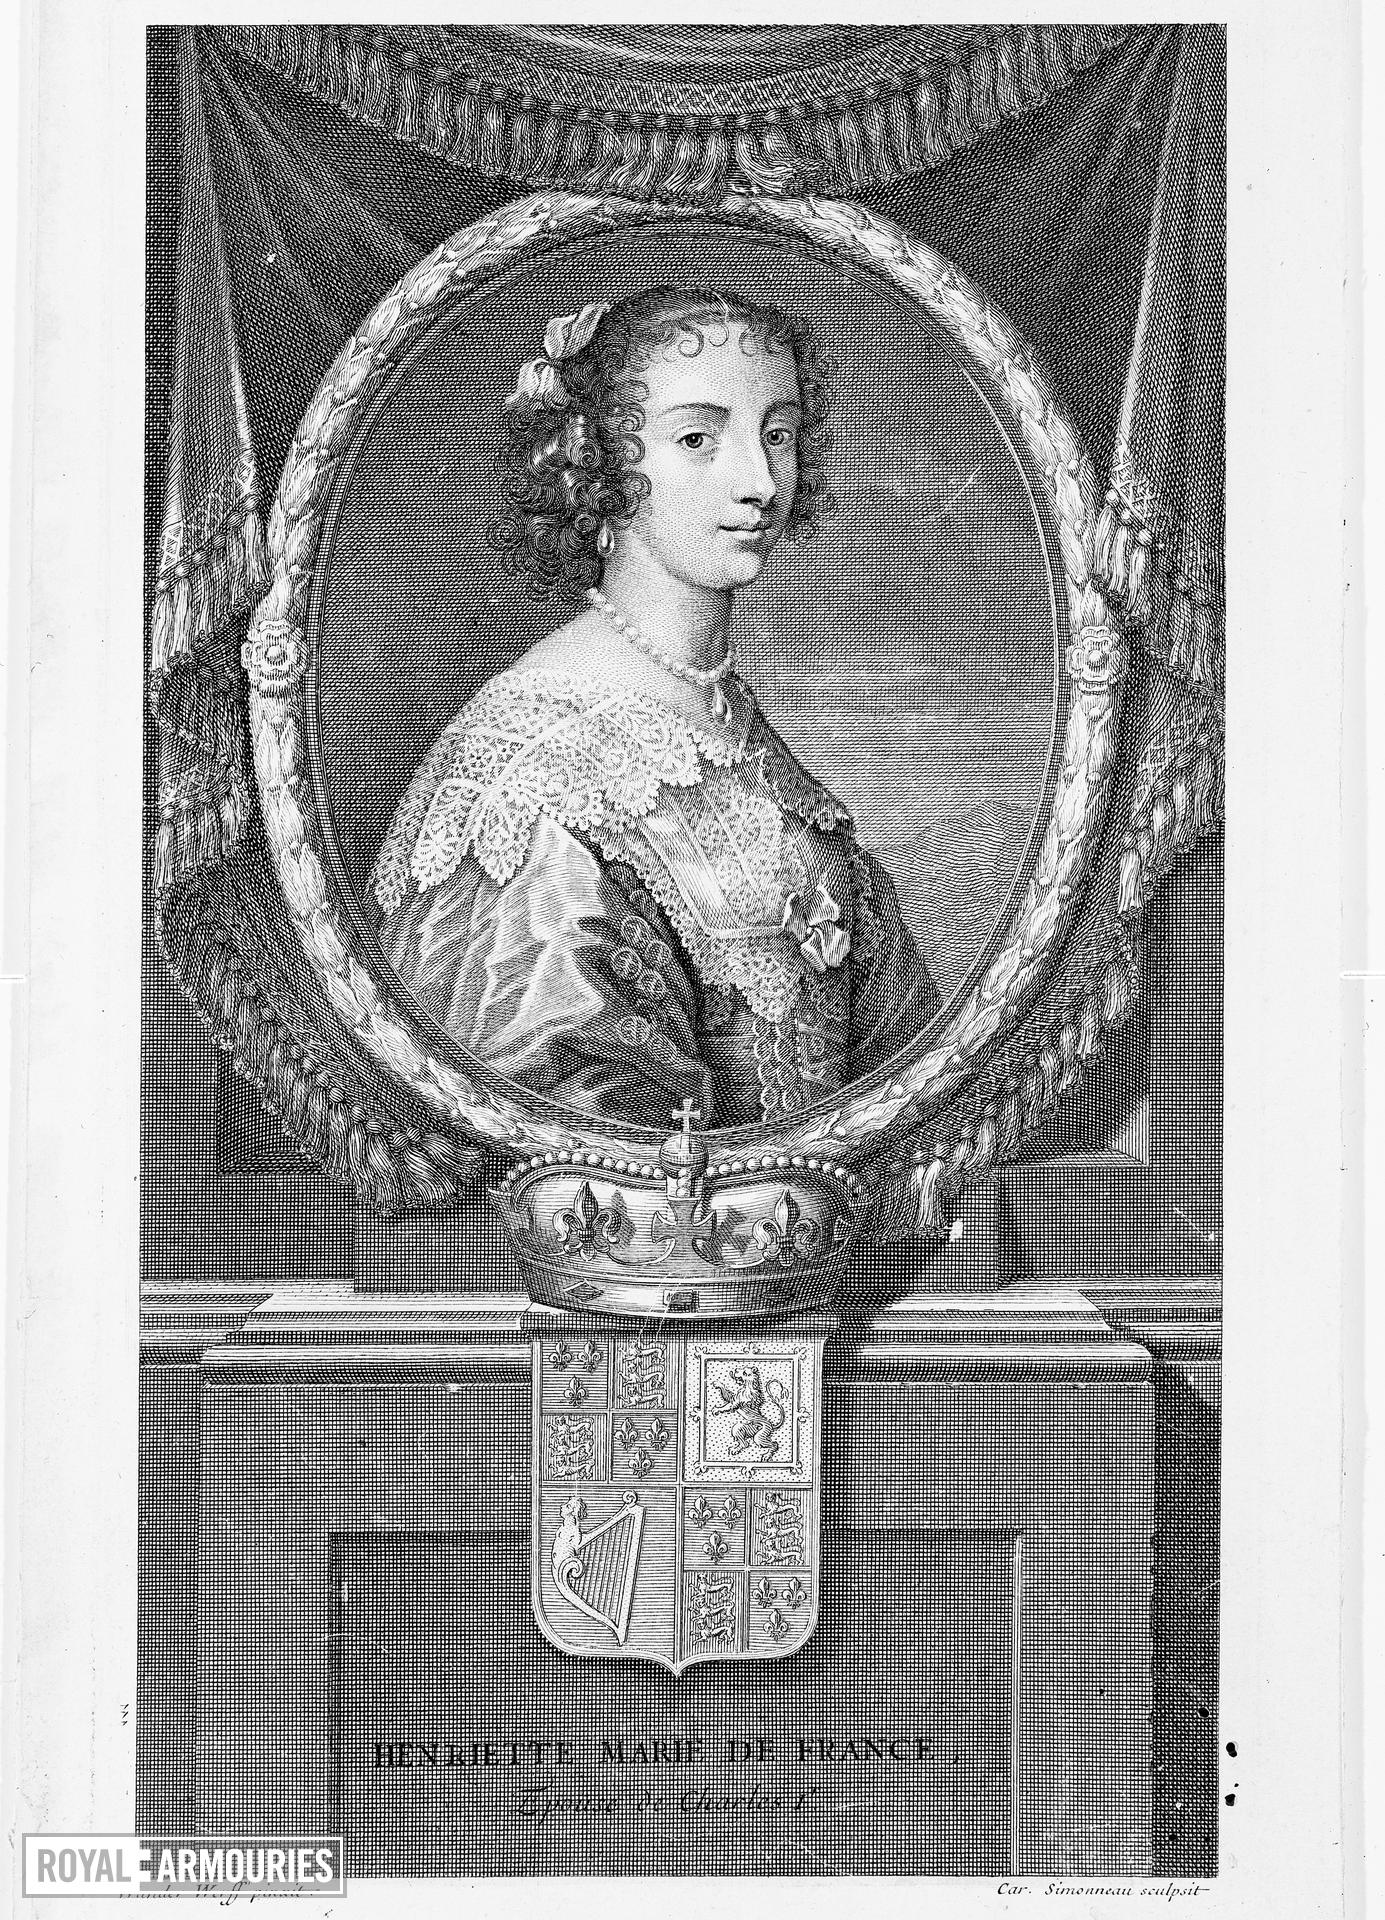 Print Engraved portrait of Henrietta Maria, Queen of England, 1609-1669. From a painting by Wander Werff, engraved by car. Simonneau.